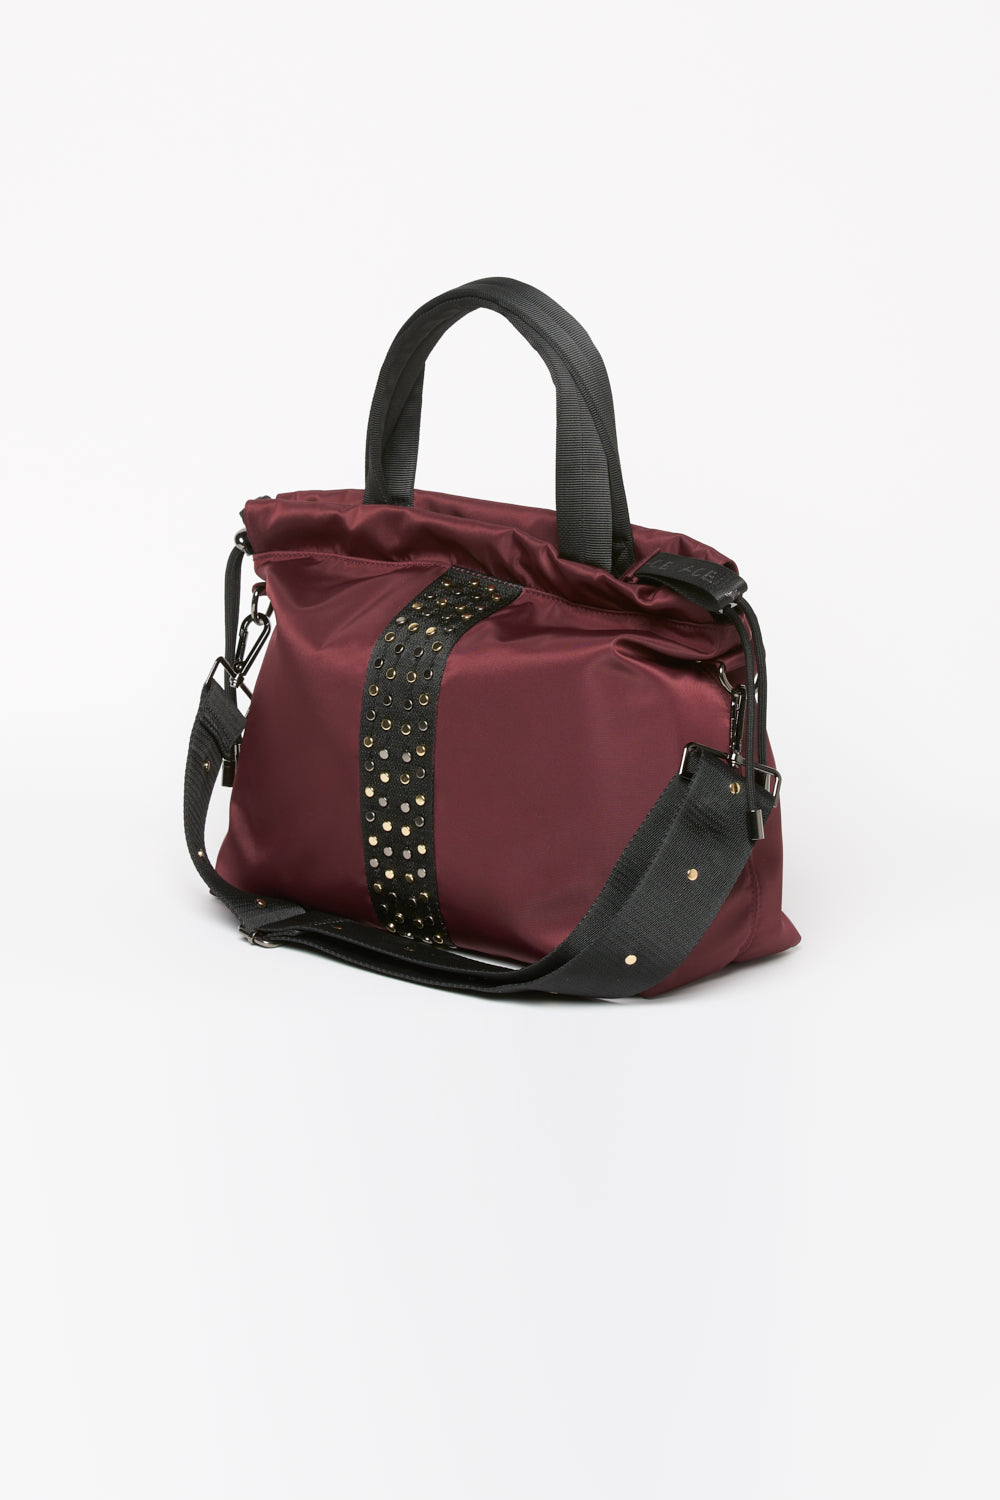 ACE Urban Tote Bag Burgundy side viw